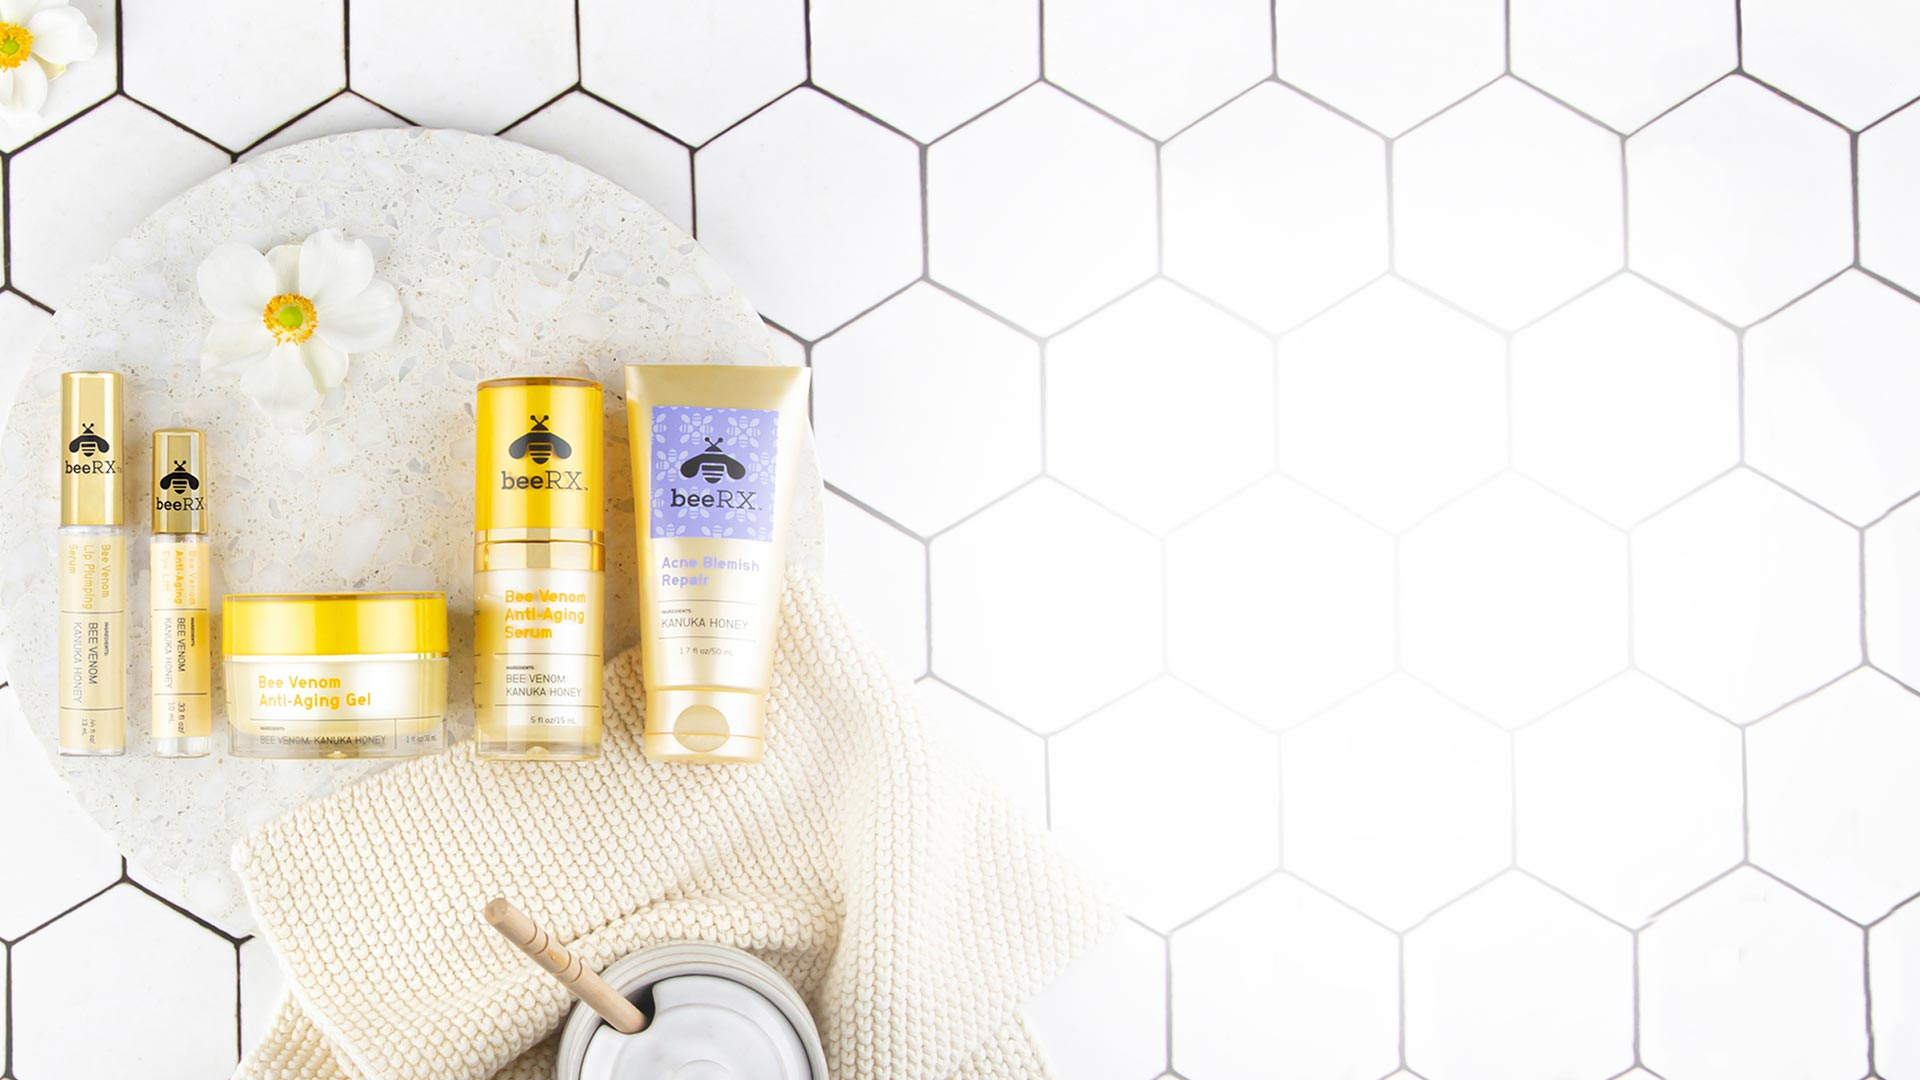 Bee RX products displayed in a shower